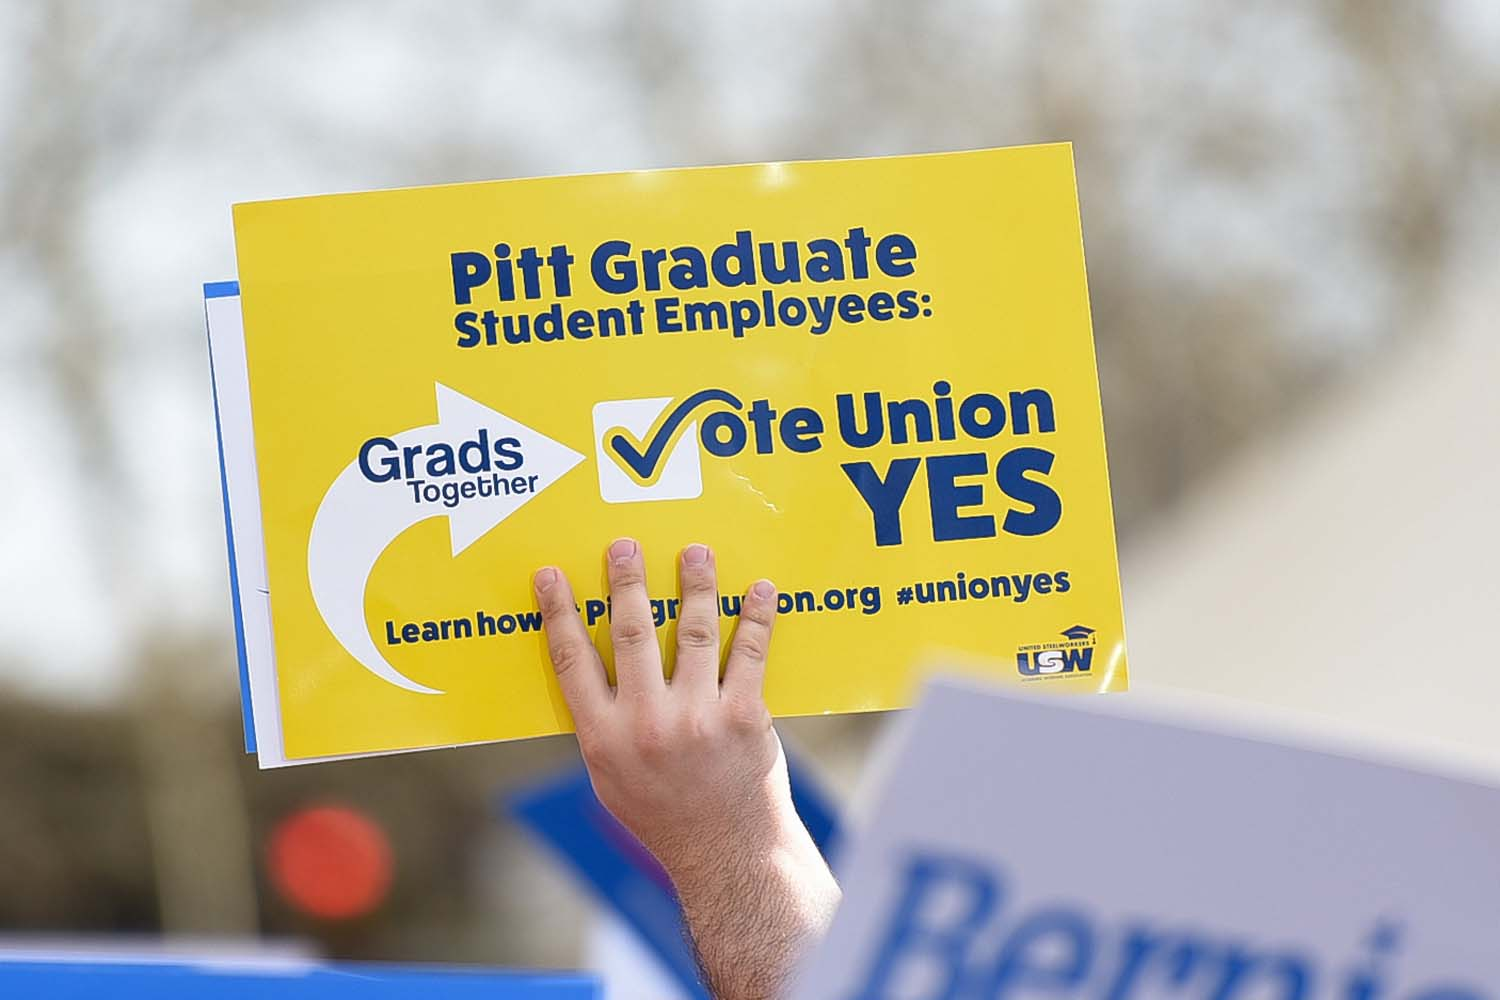 The Pennsylvania Labor Review Board has determined that the University engaged in unfair labor practices during the grad student union election last spring.